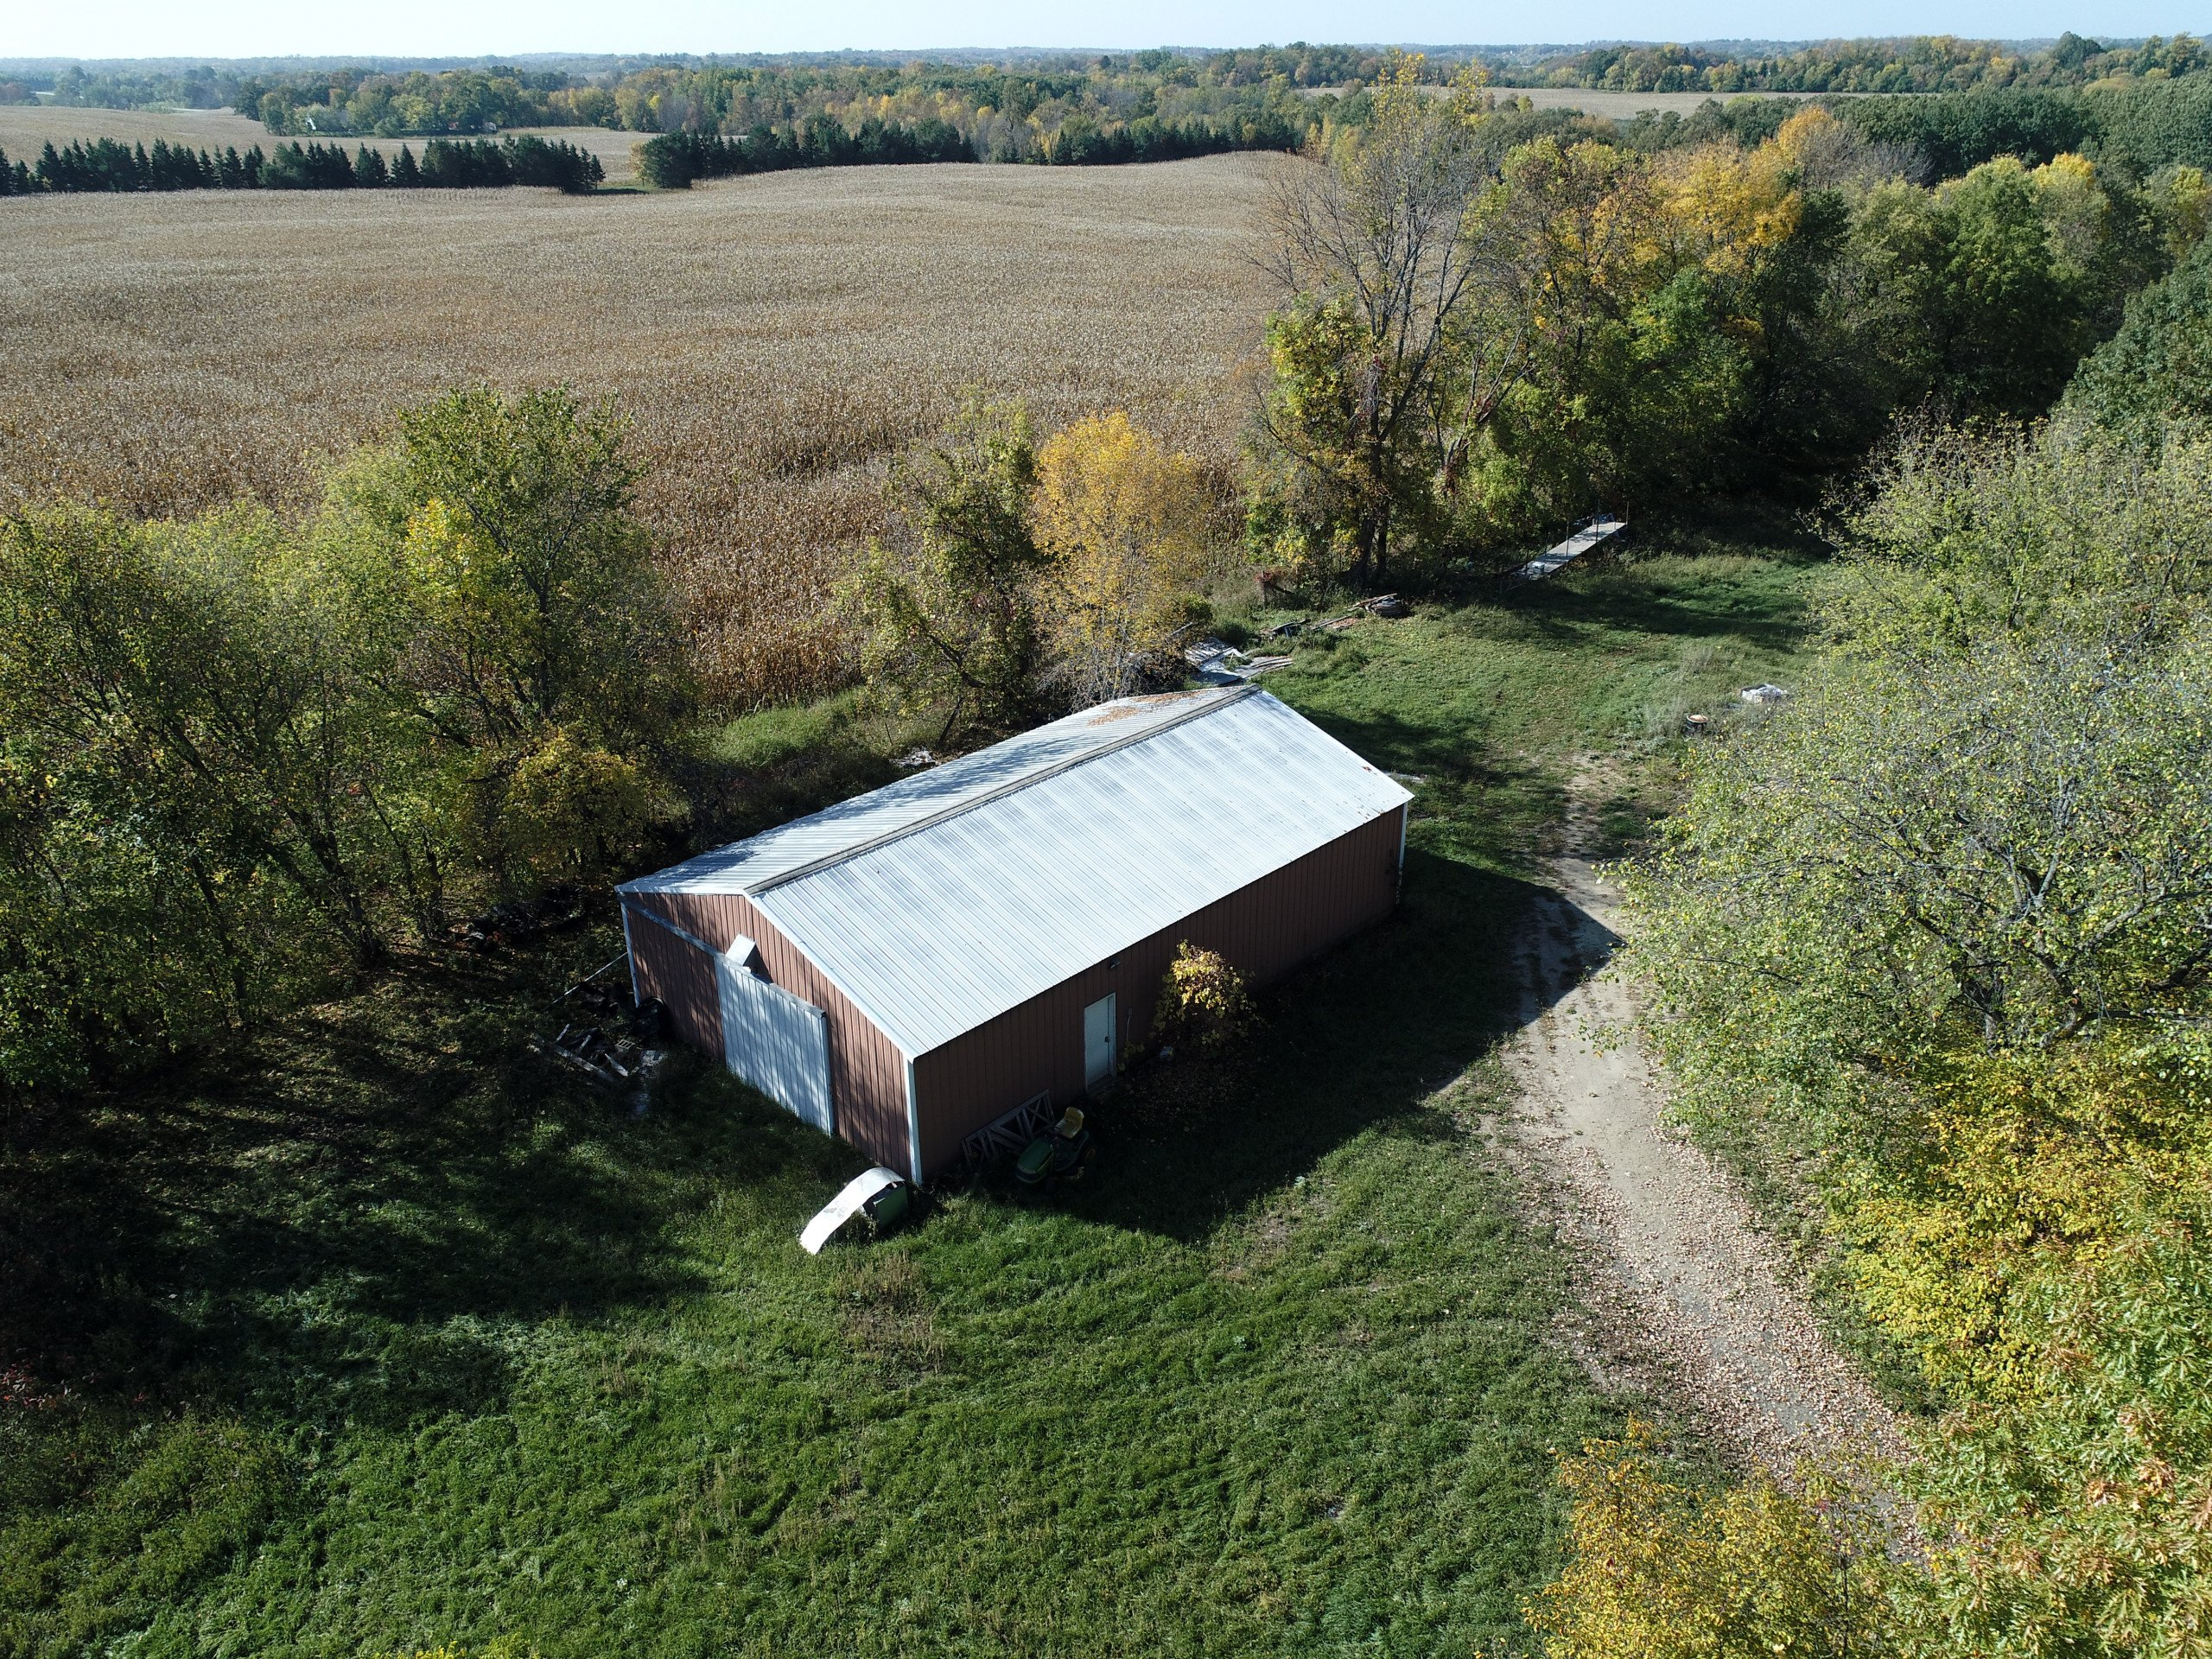 residential-auctions-land-douglas-county-minnesota-40-acres-listing-number-15777-Pole Building-0.jpg